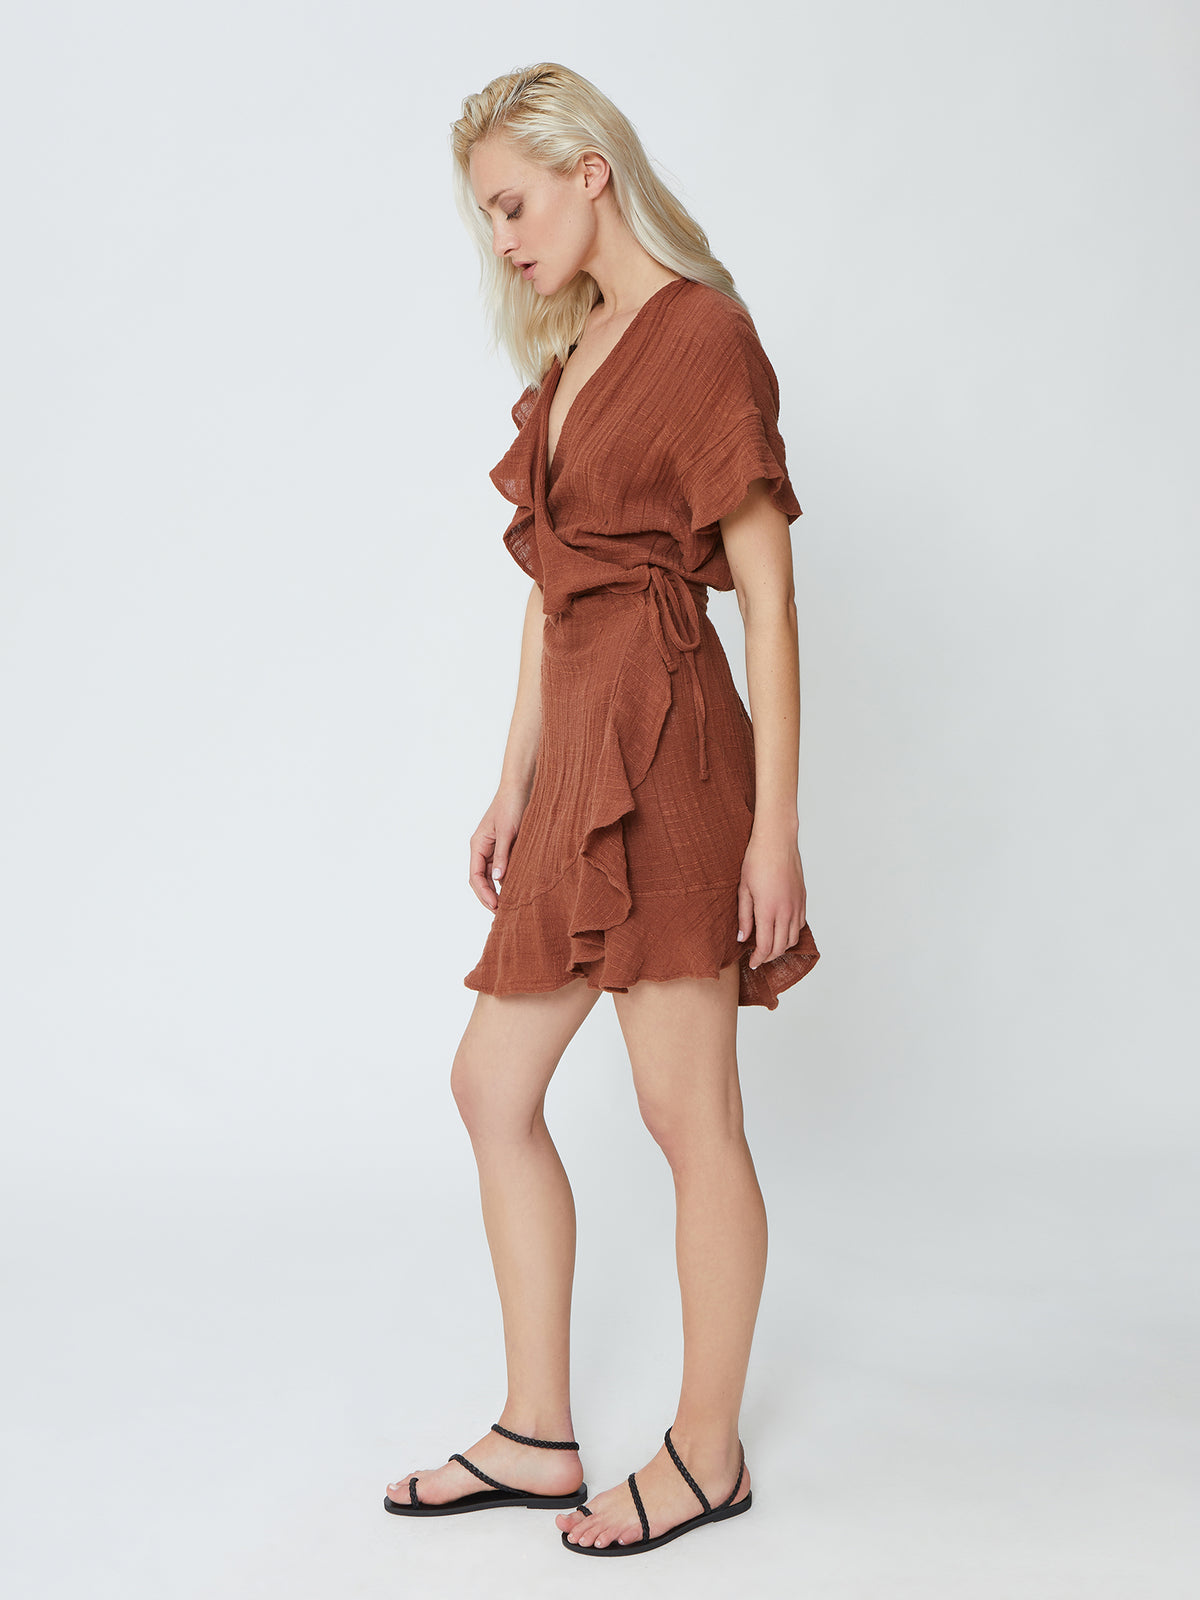 Isapera - Twist Dress - Sienna